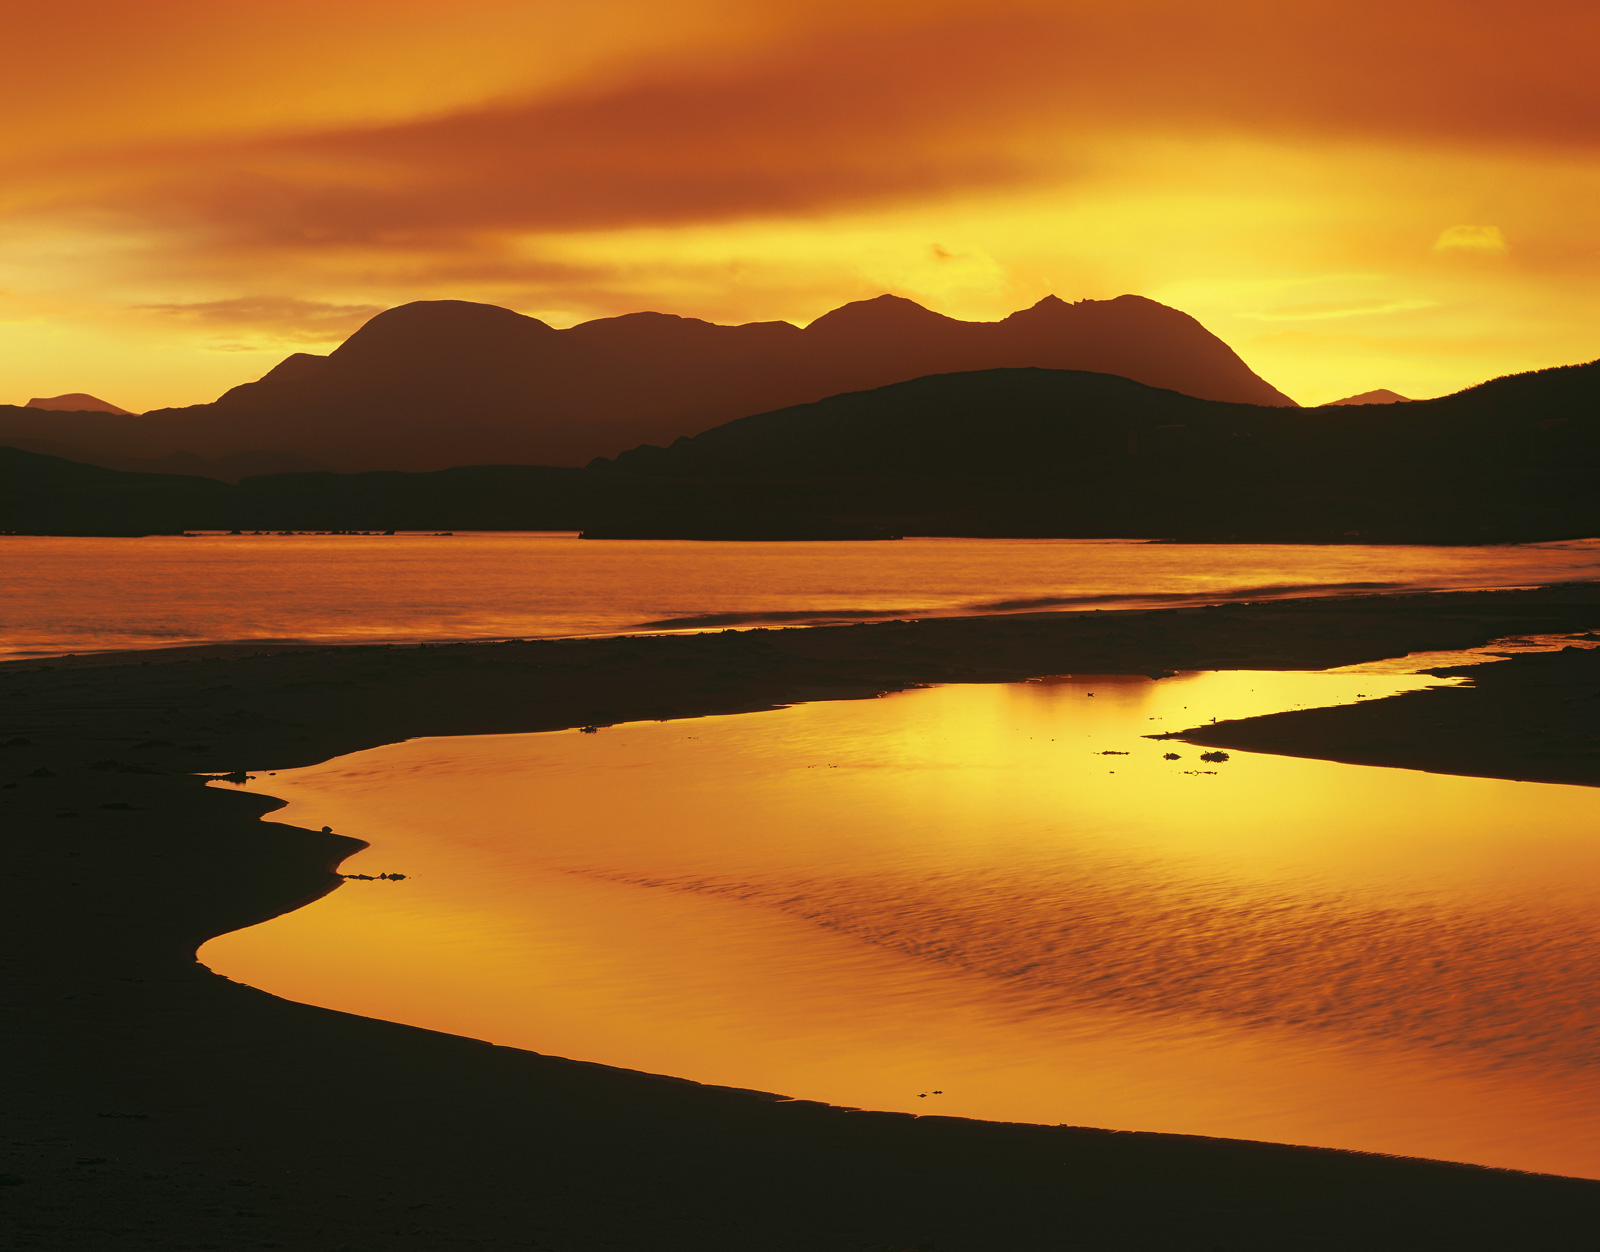 Lava orange skies above the peaks surrounding Mellon Udrigle are reflected in the still waters of a peat stream that meanders...